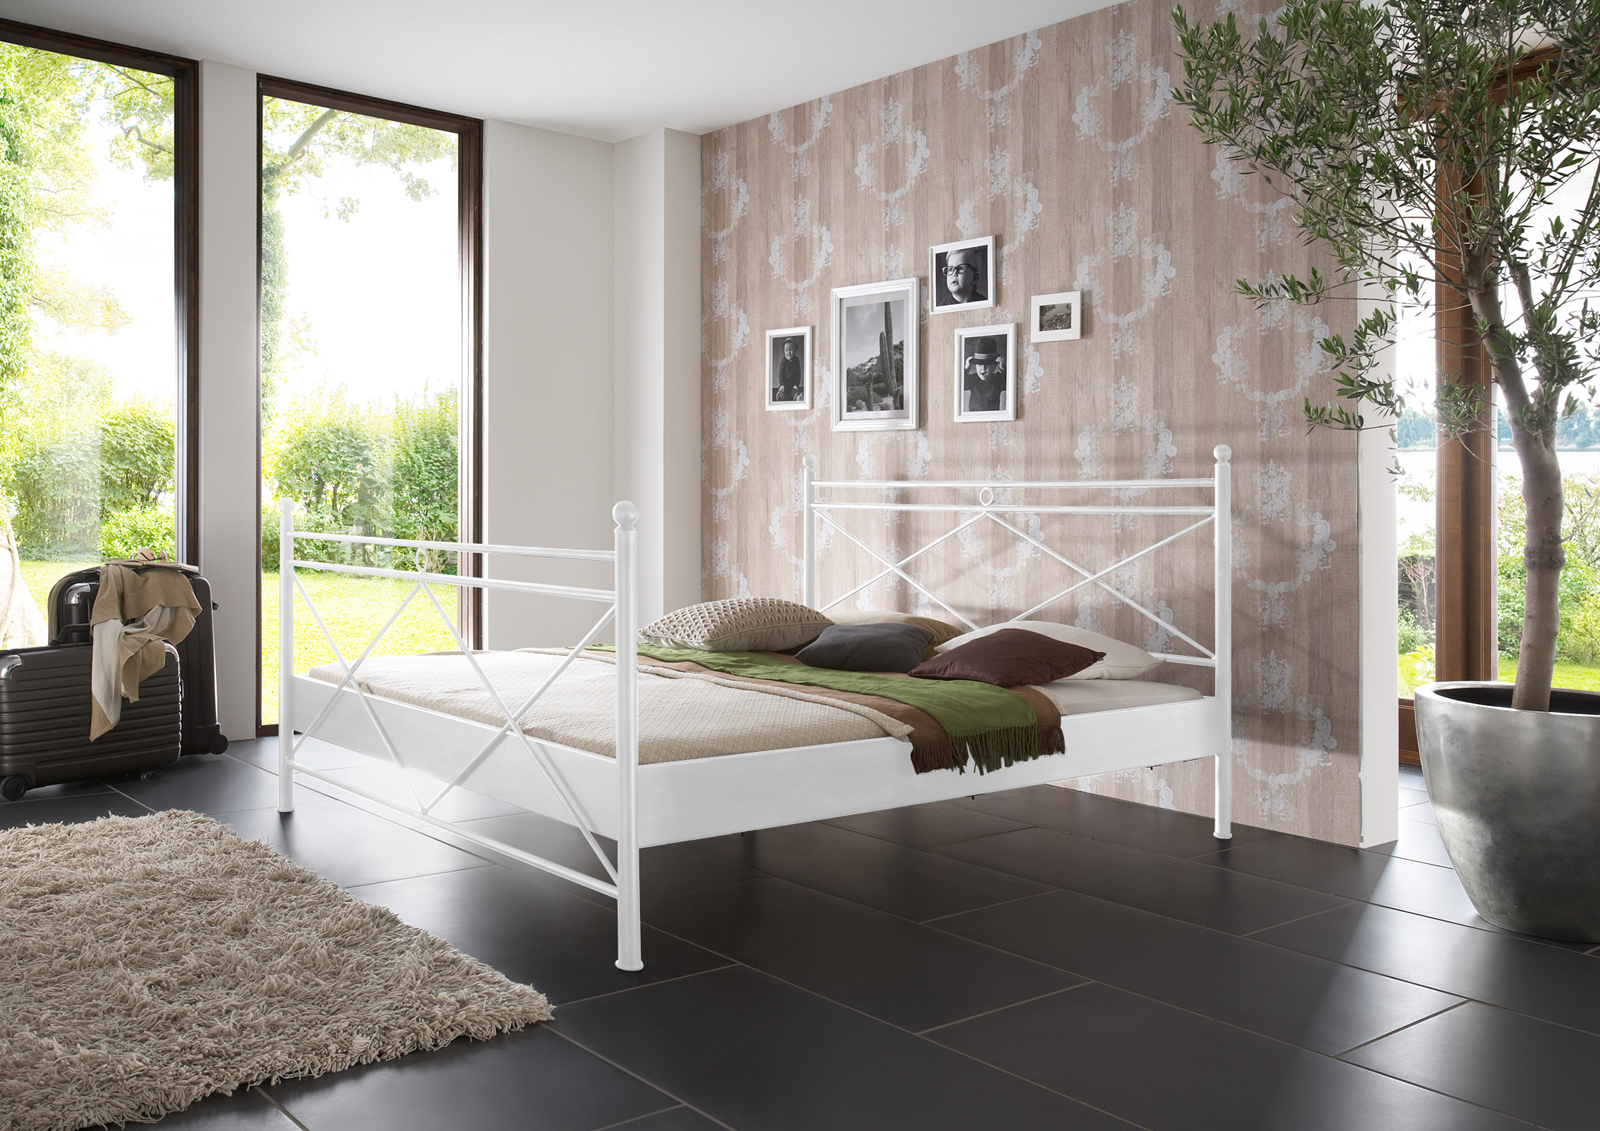 sam metallbett wei 140 x 200 cm imola auf lager. Black Bedroom Furniture Sets. Home Design Ideas